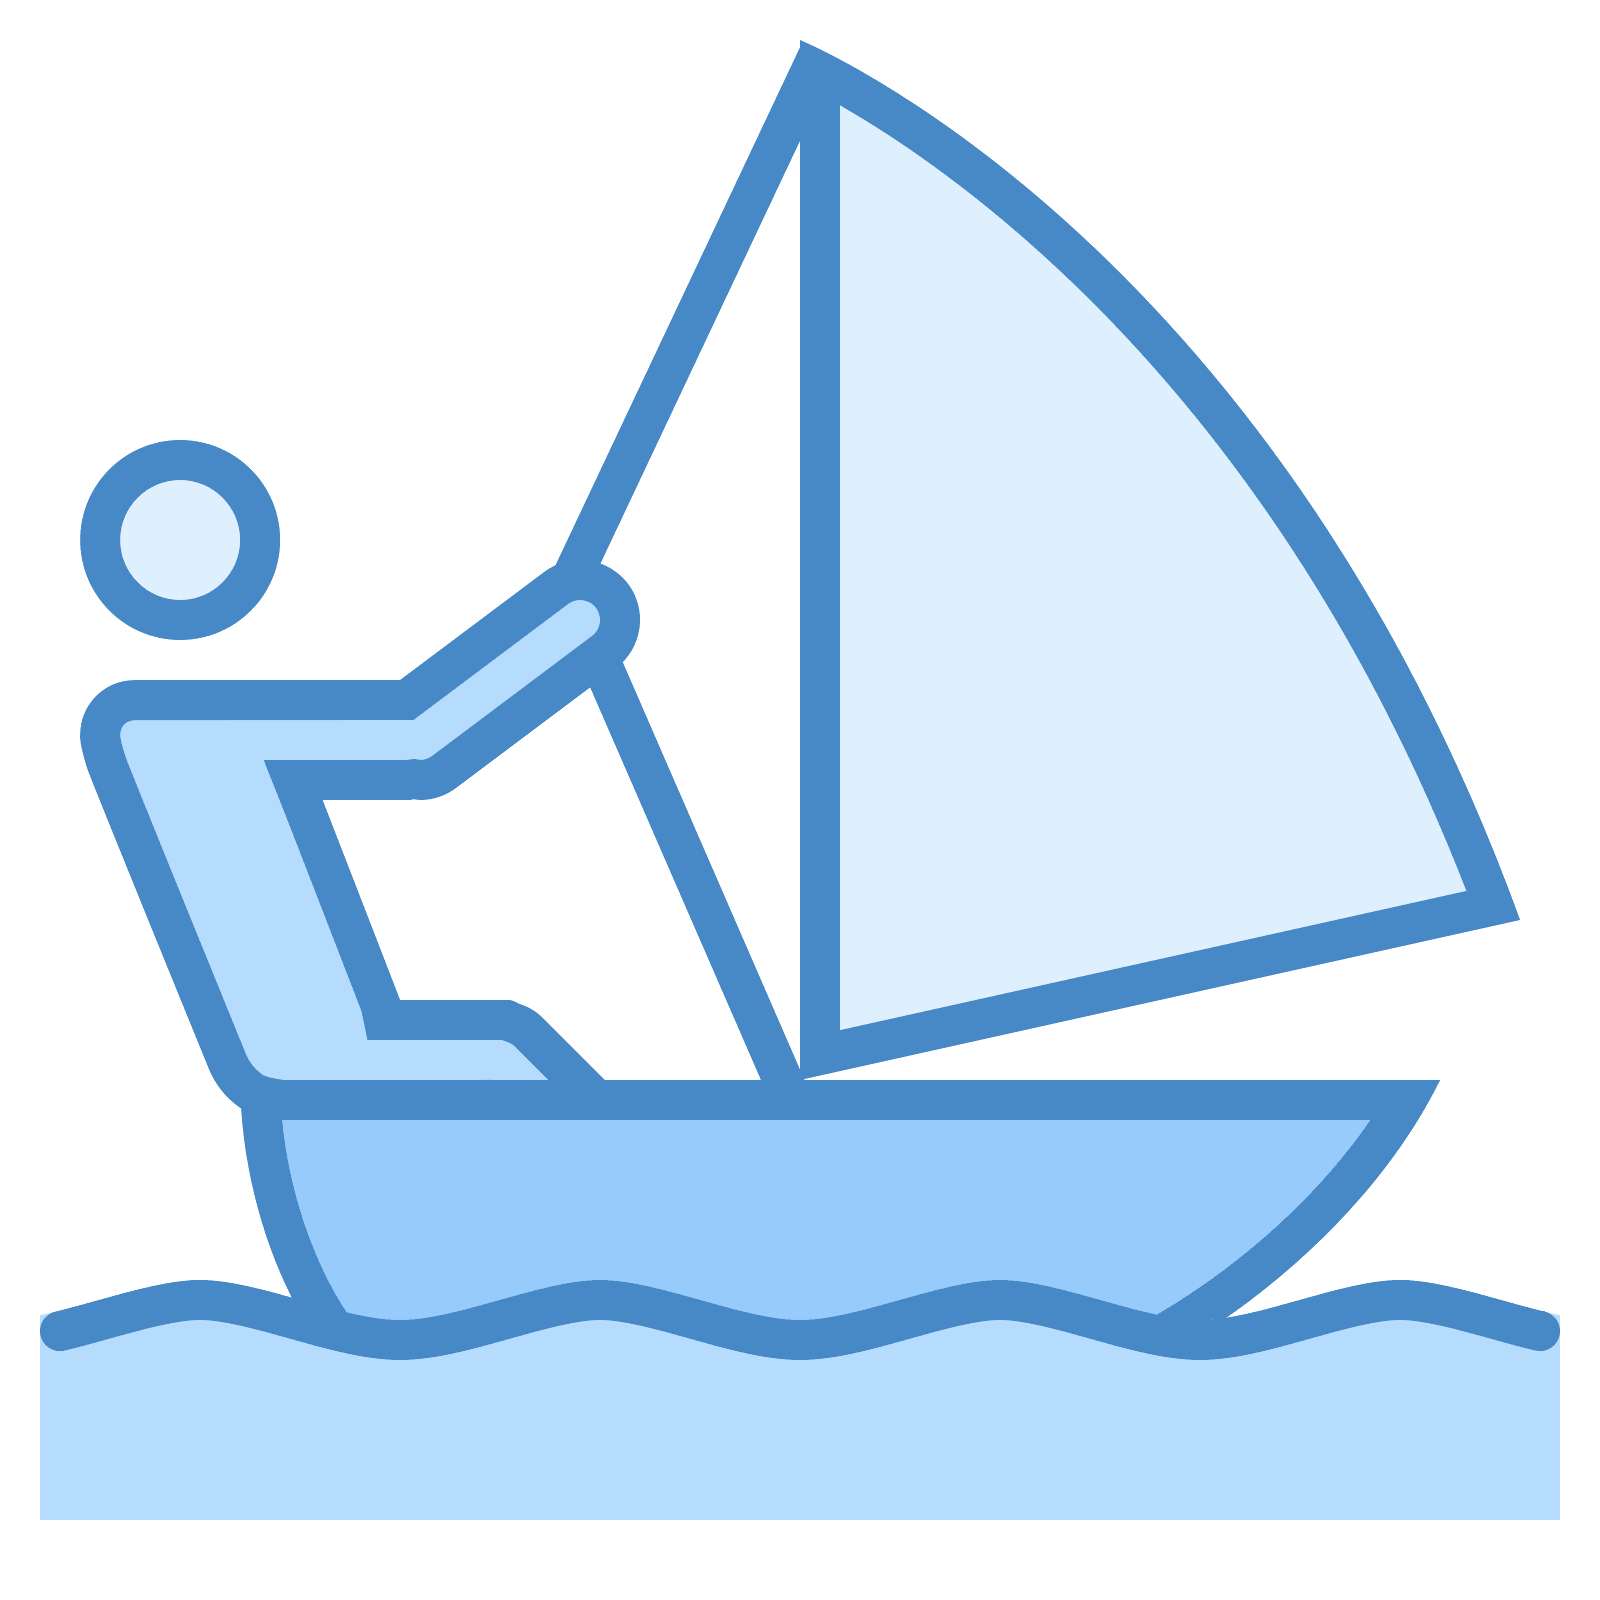 svg royalty free Sailing images png transparent. Yacht clipart sale boat